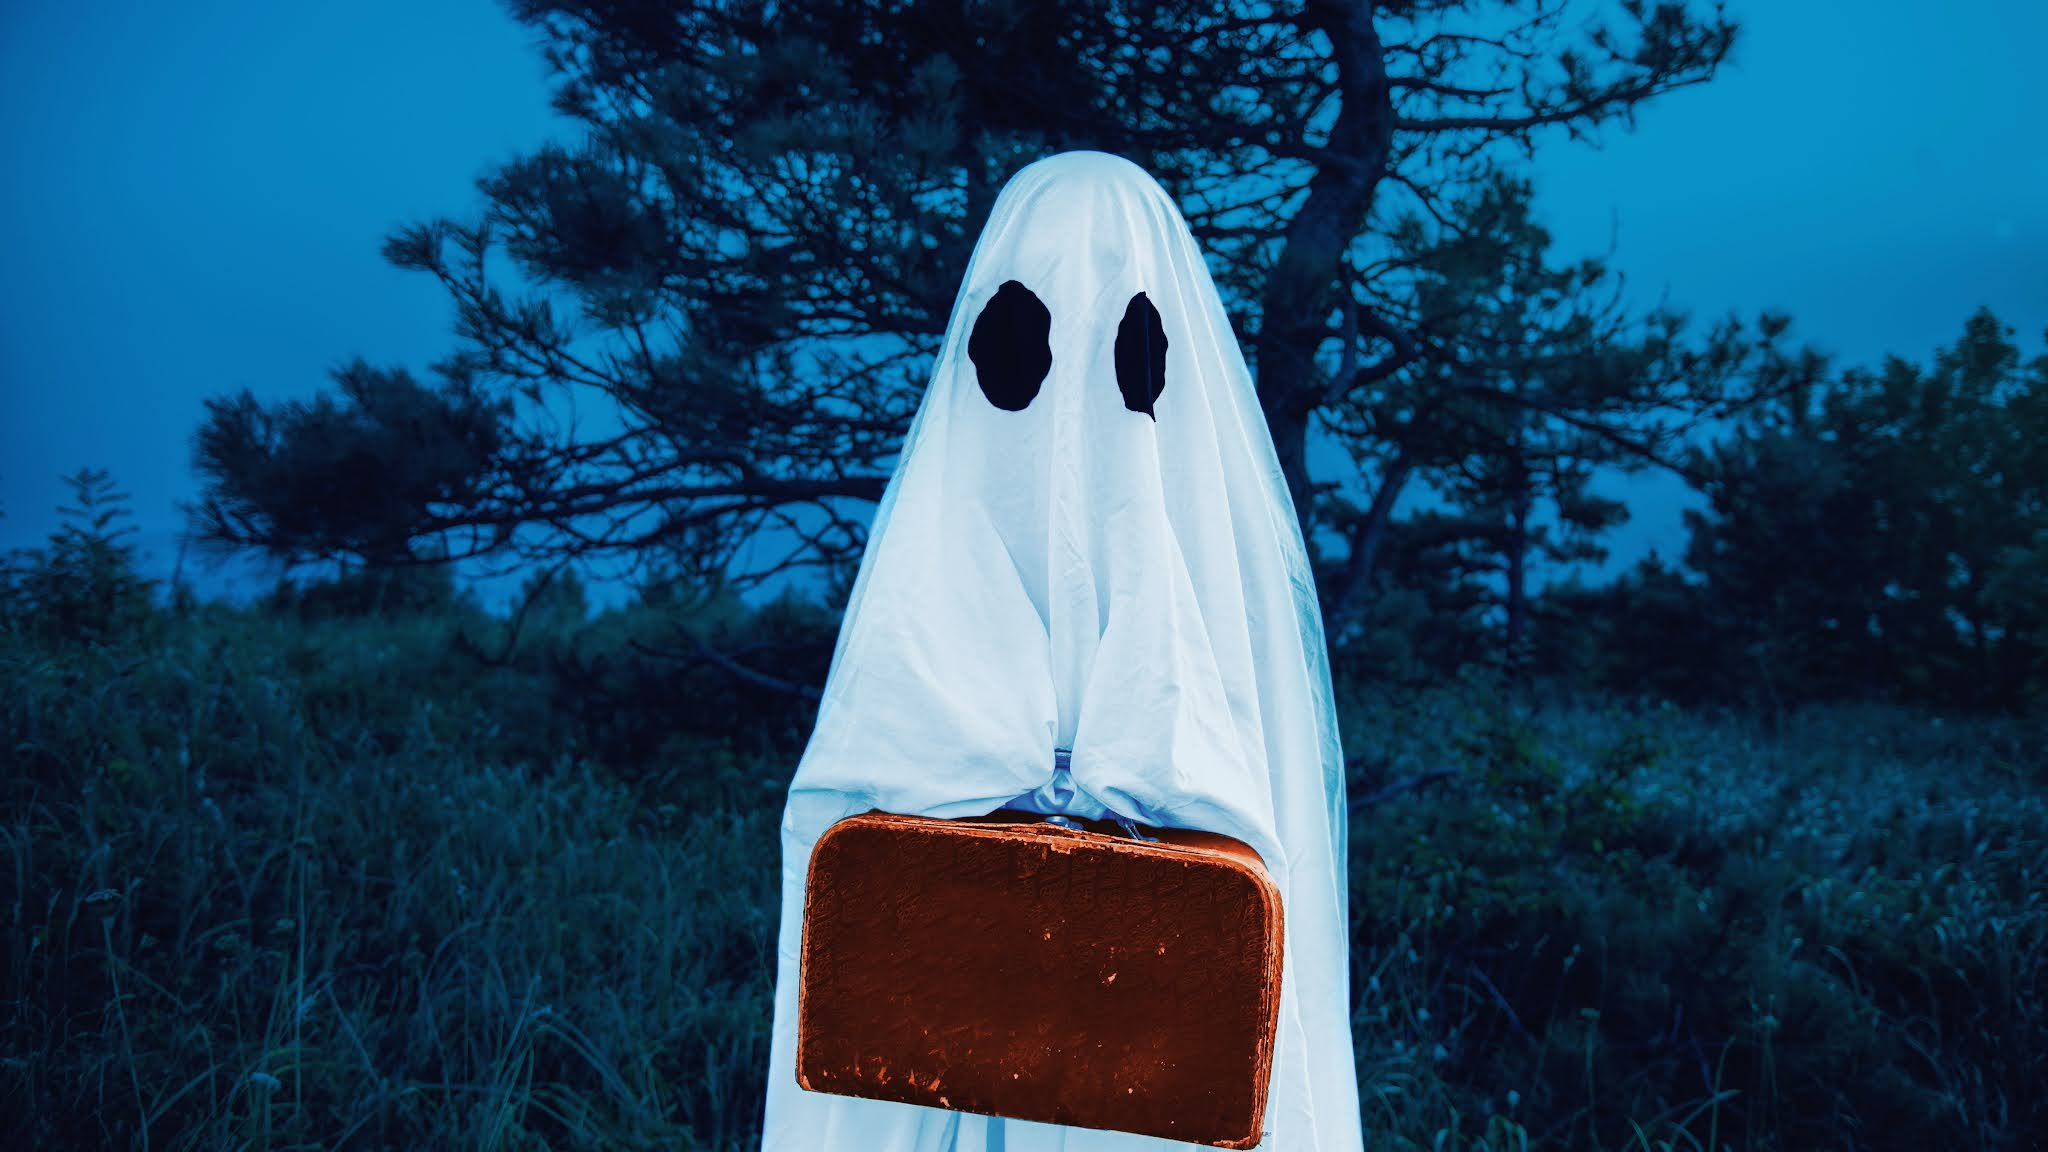 ghost holding a suitcase